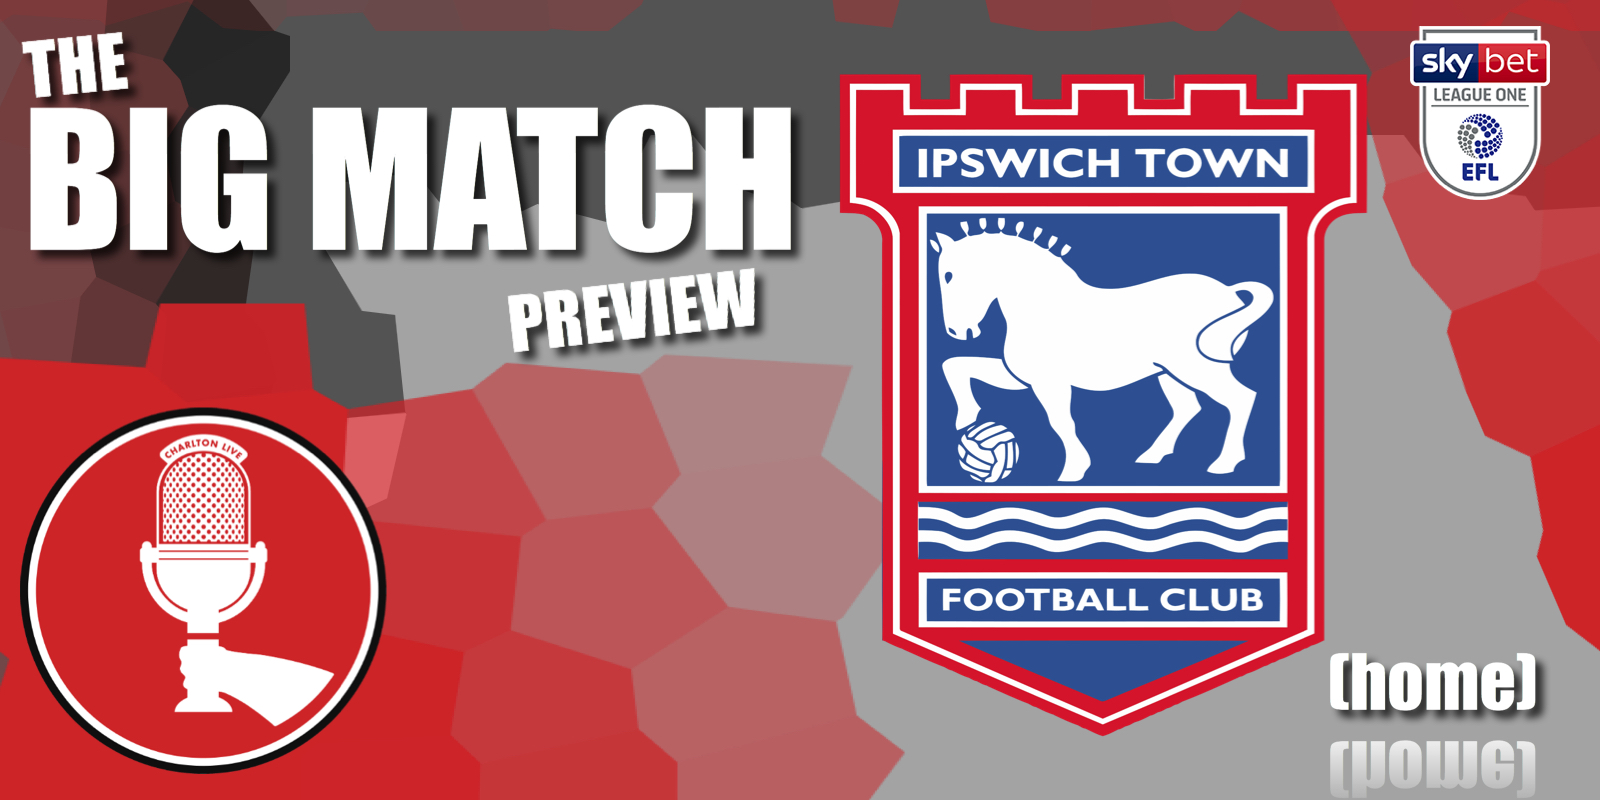 Big Match Preview – Ipswich Town at home 2020-21